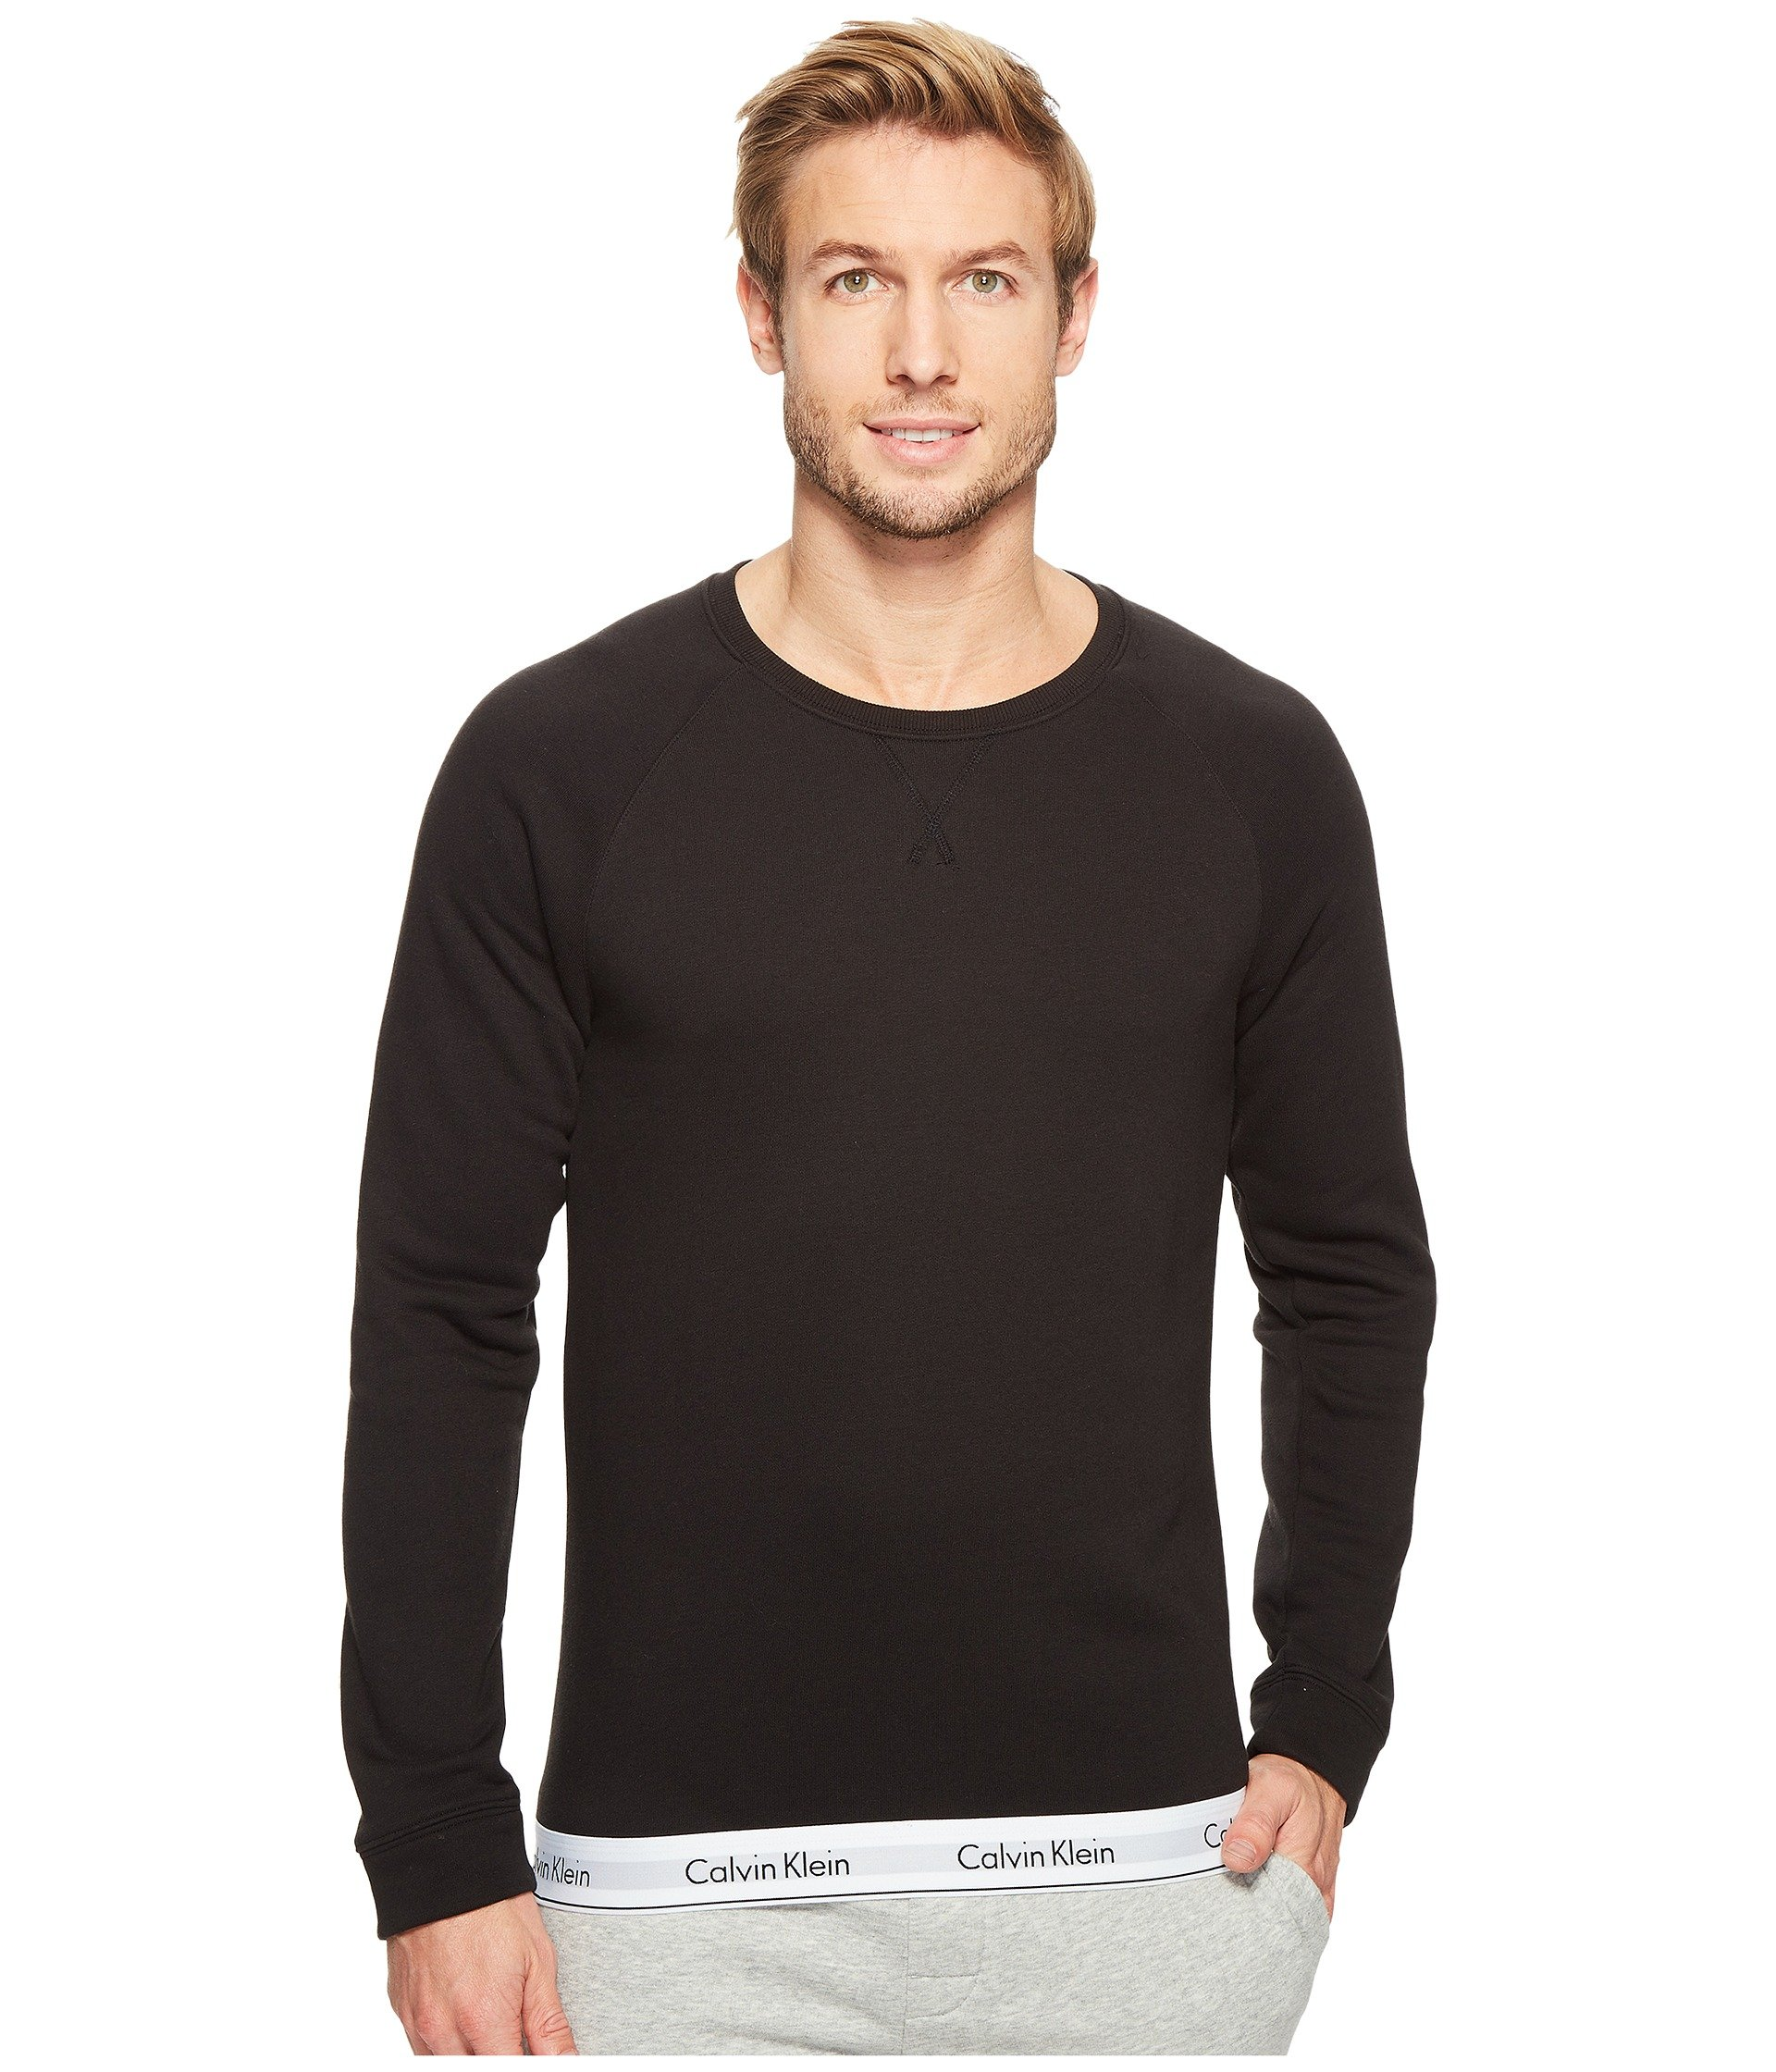 Sweatshirt Stretch Calvin Cotton Klein Modern Underwear Lounge In IYYr8qan